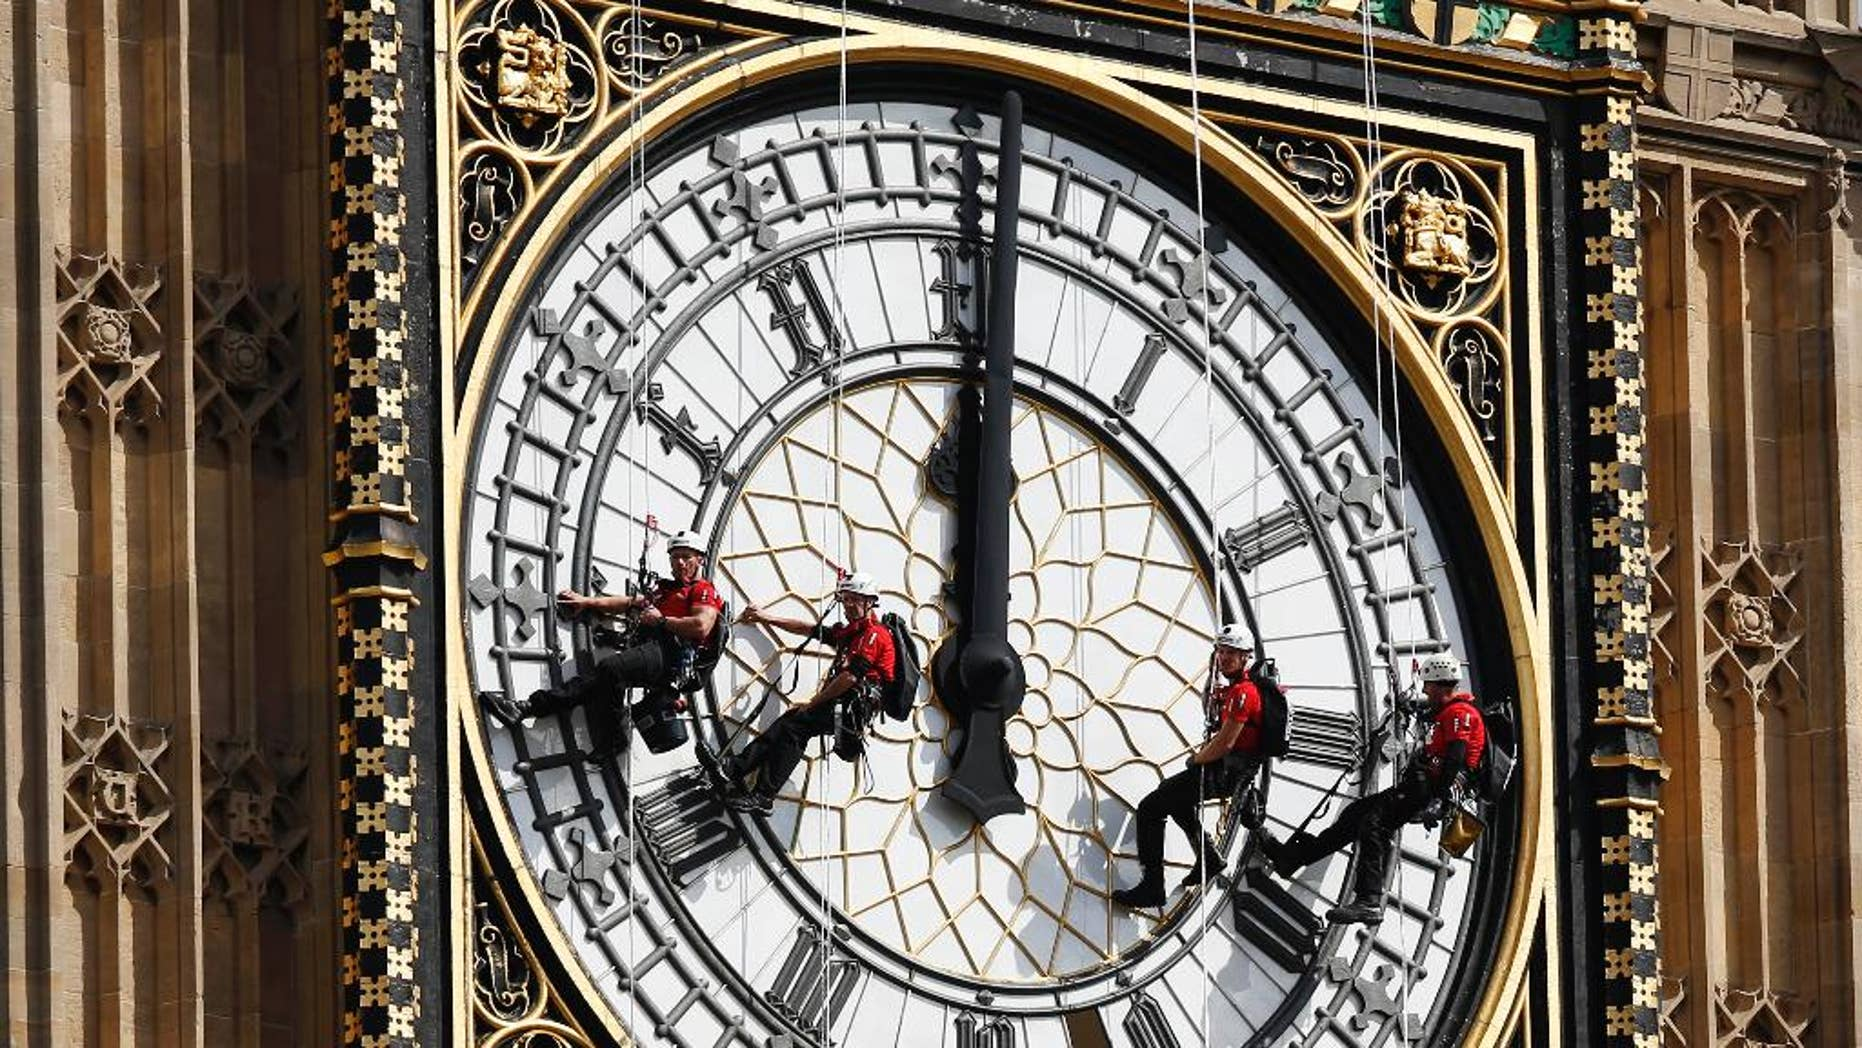 FILE- In this file photo dated  Monday, Aug. 18, 2014, workers abseil outside the clock face as they clean Big Ben's clock tower of the Houses of Parliament in London.  According to reports published Sunday Oct. 18, 2015, the chimes of Big Ben may fall silent for many months as urgent repairs are carried out to the clock and the tower, which  must begin as soon as possible.(AP Photo/Sang Tan, FILE)